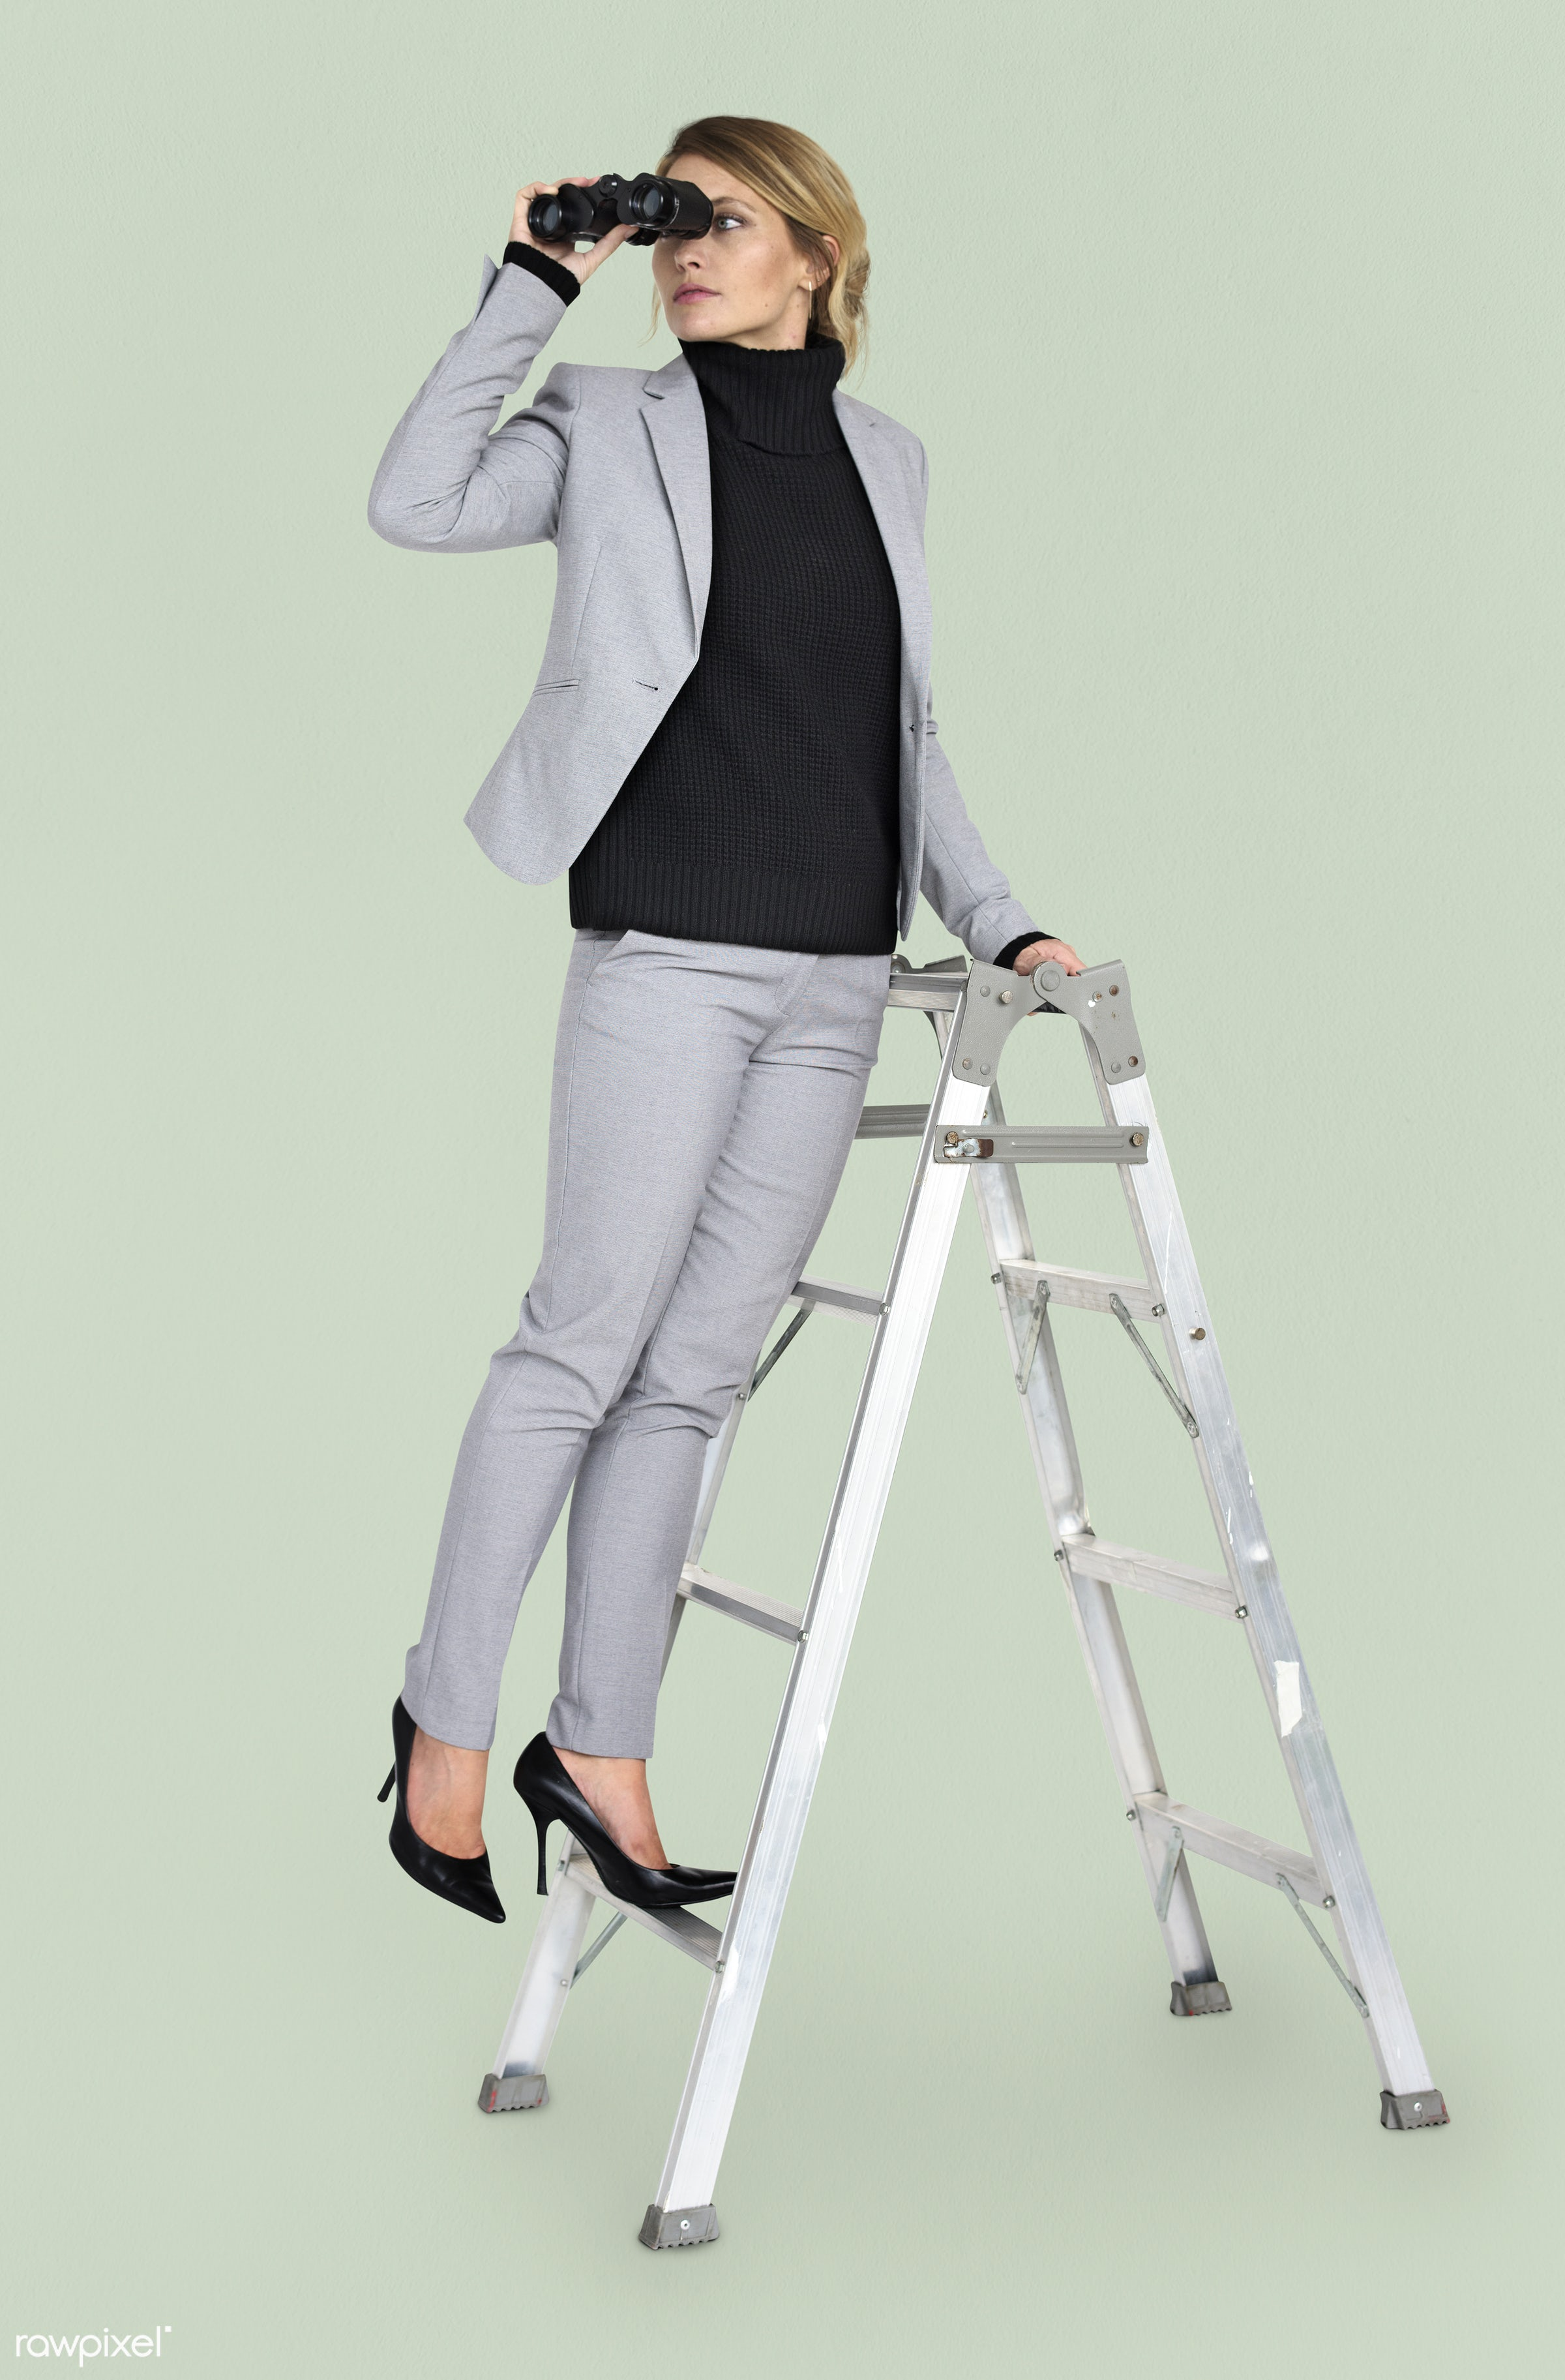 ladder, background, binoculars, business attire, business wear, business woman, candid, caucasian, emotion, expression,...